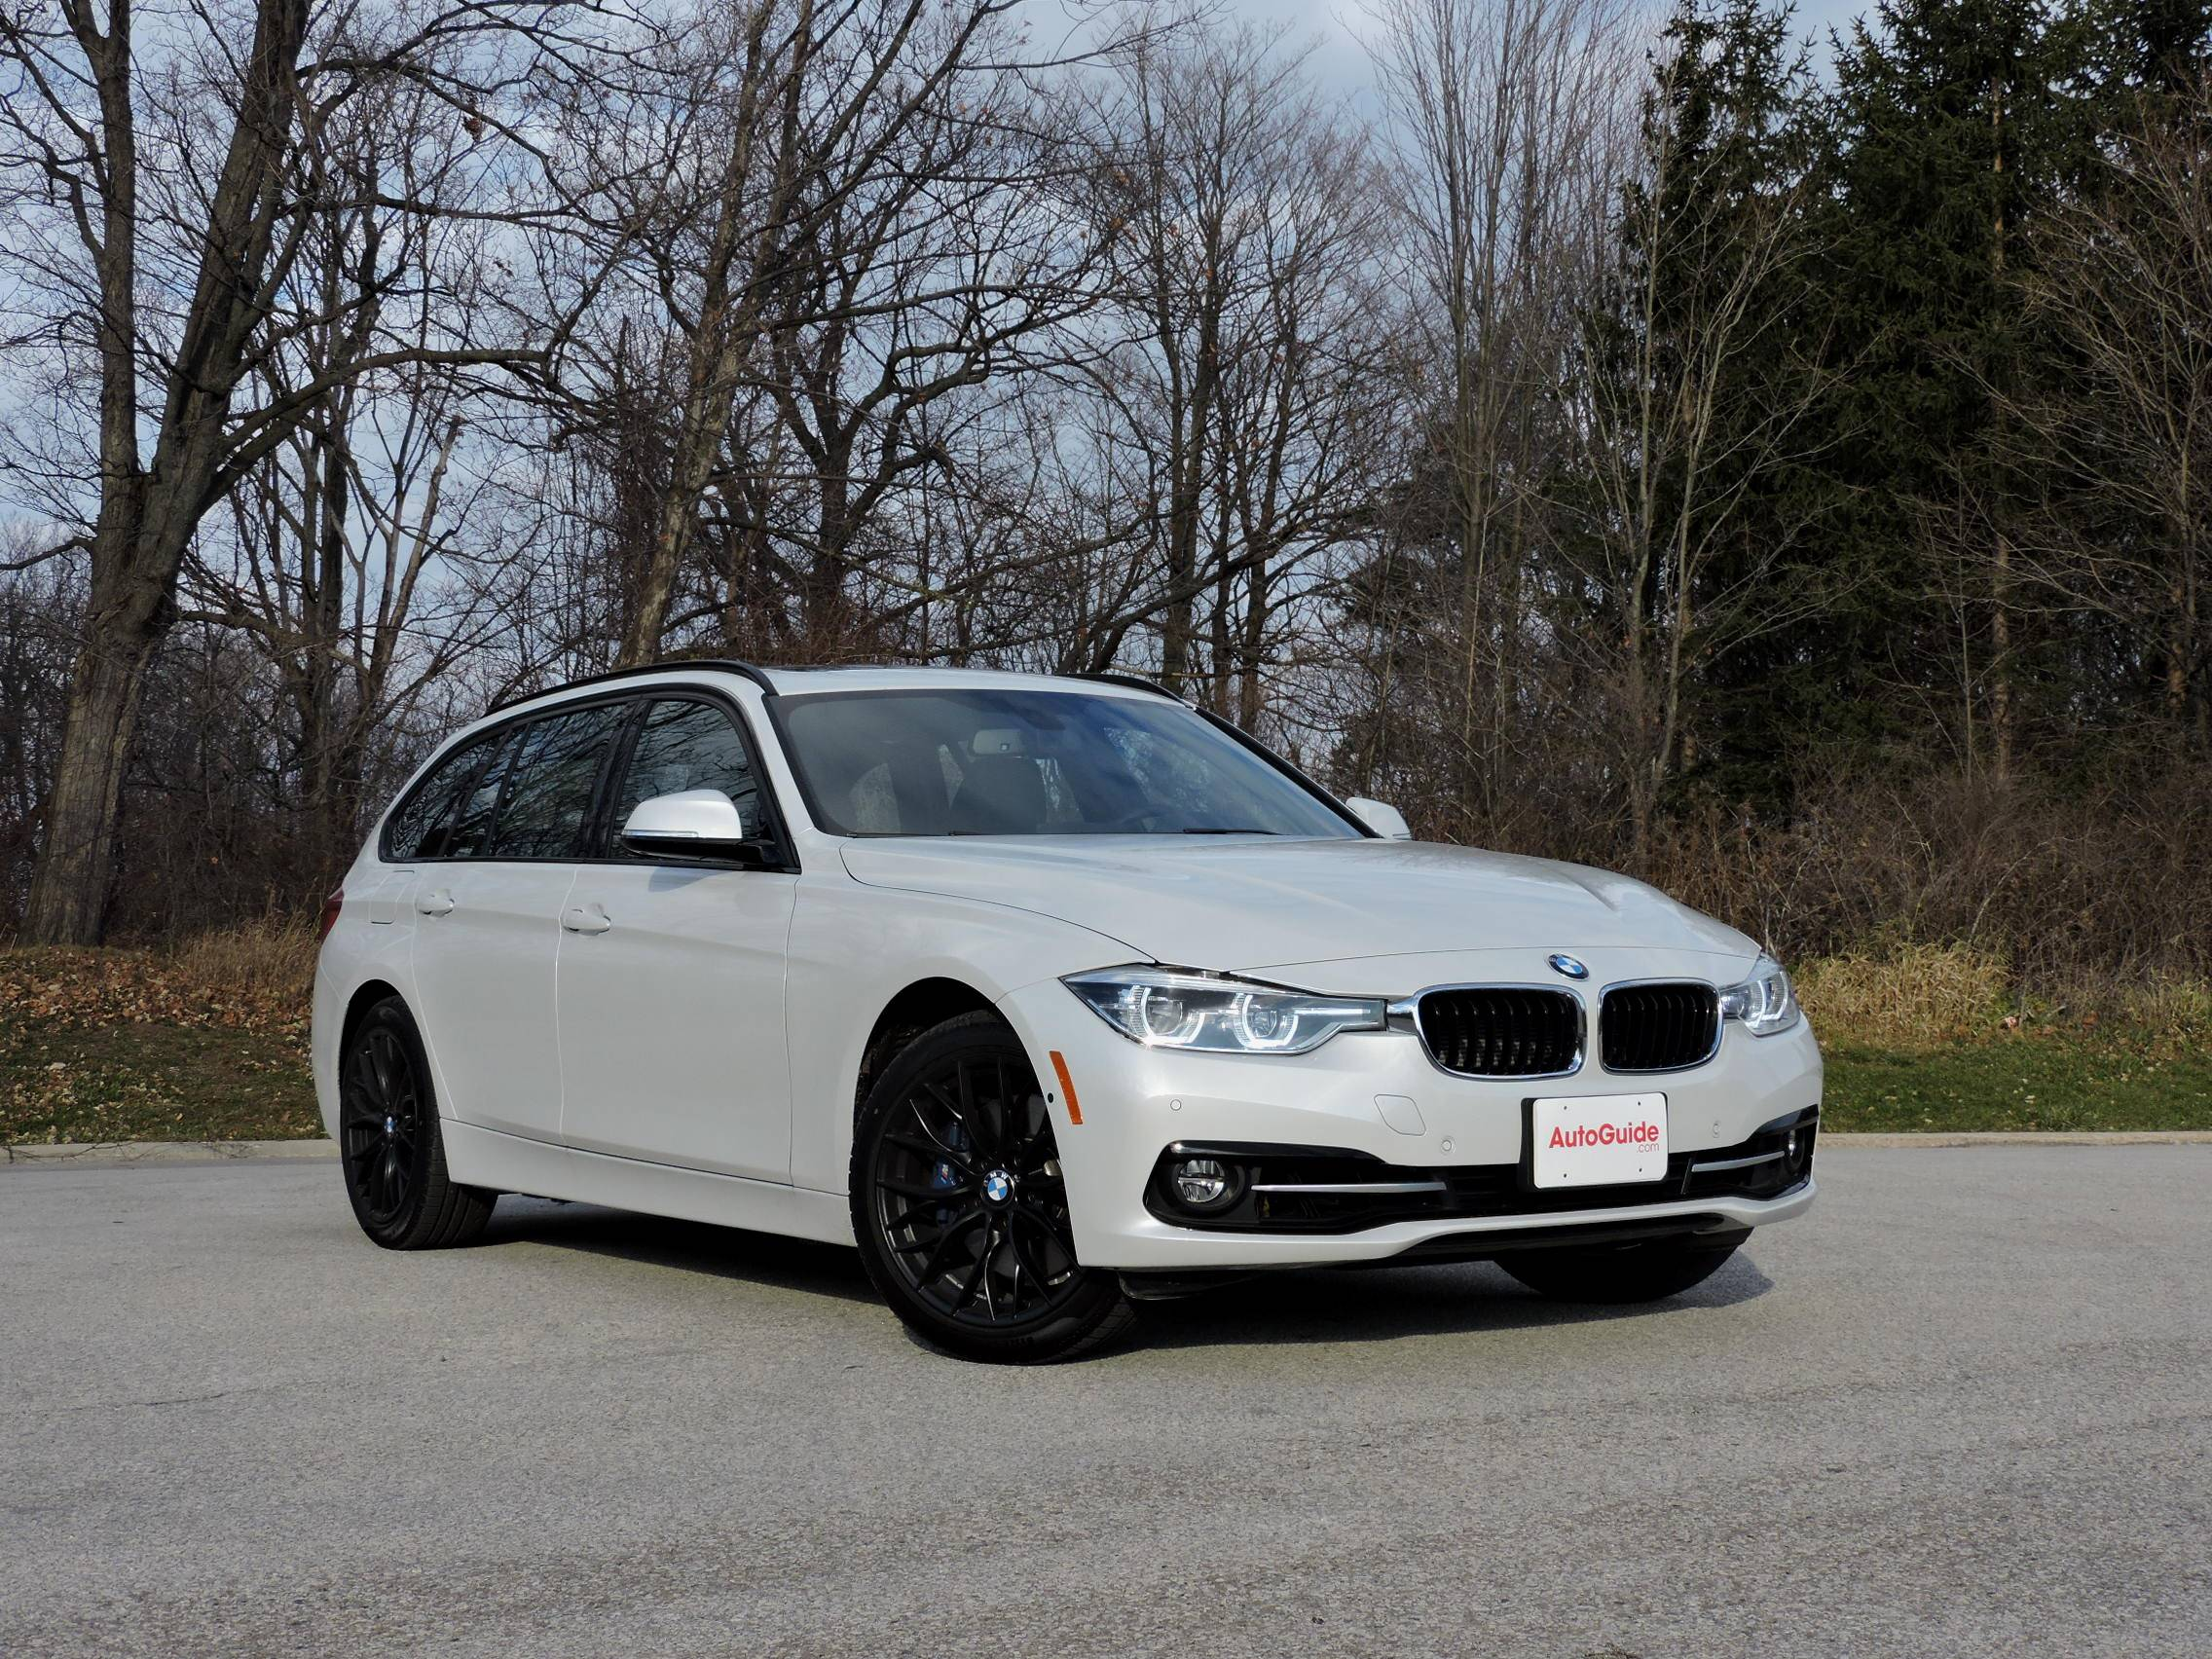 2016 Bmw 328i Xdrive Sports Wagon 01